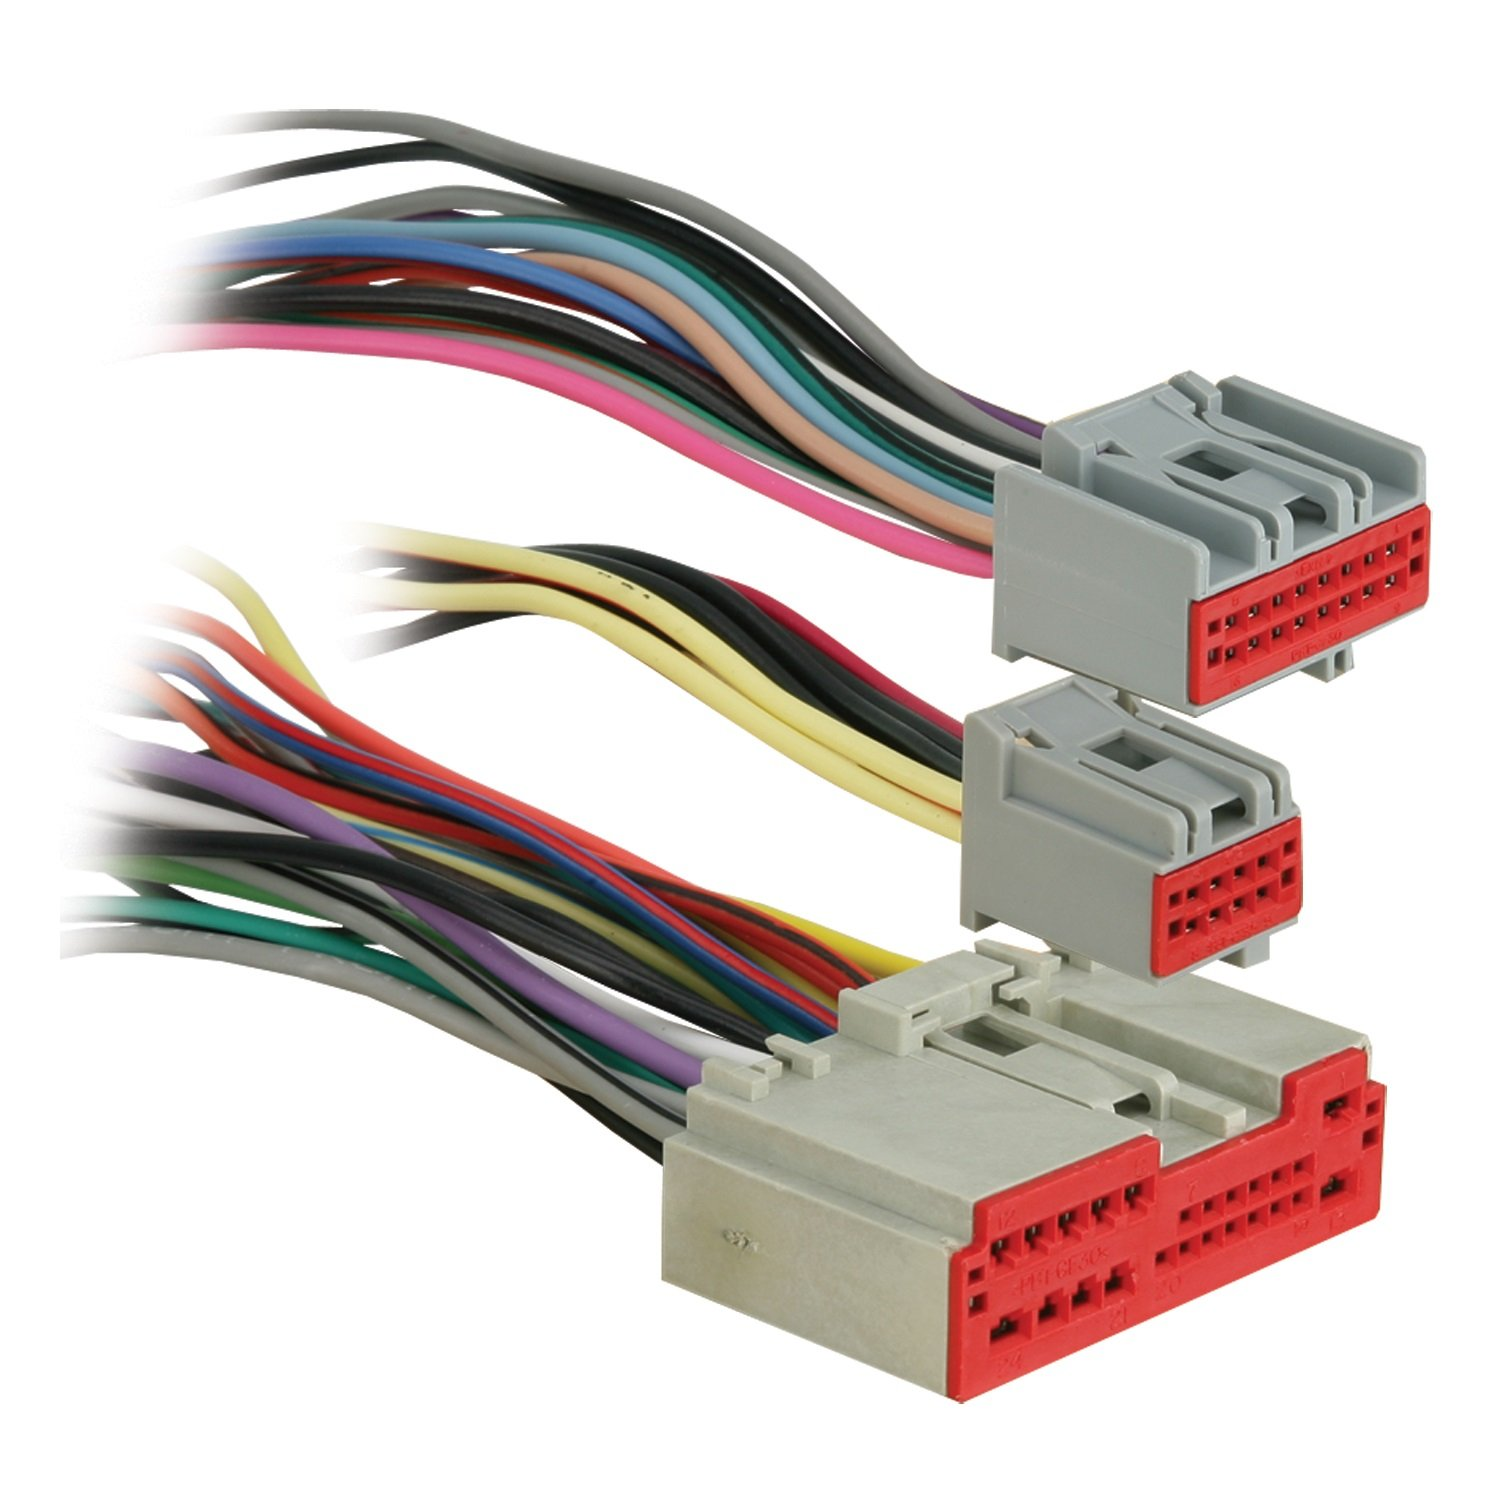 Walmart Wiring Harness Ford Trusted Diagram Dodge Metra Reverse 71 5520 1 For Select 2003 Up Parking Assist Sensor